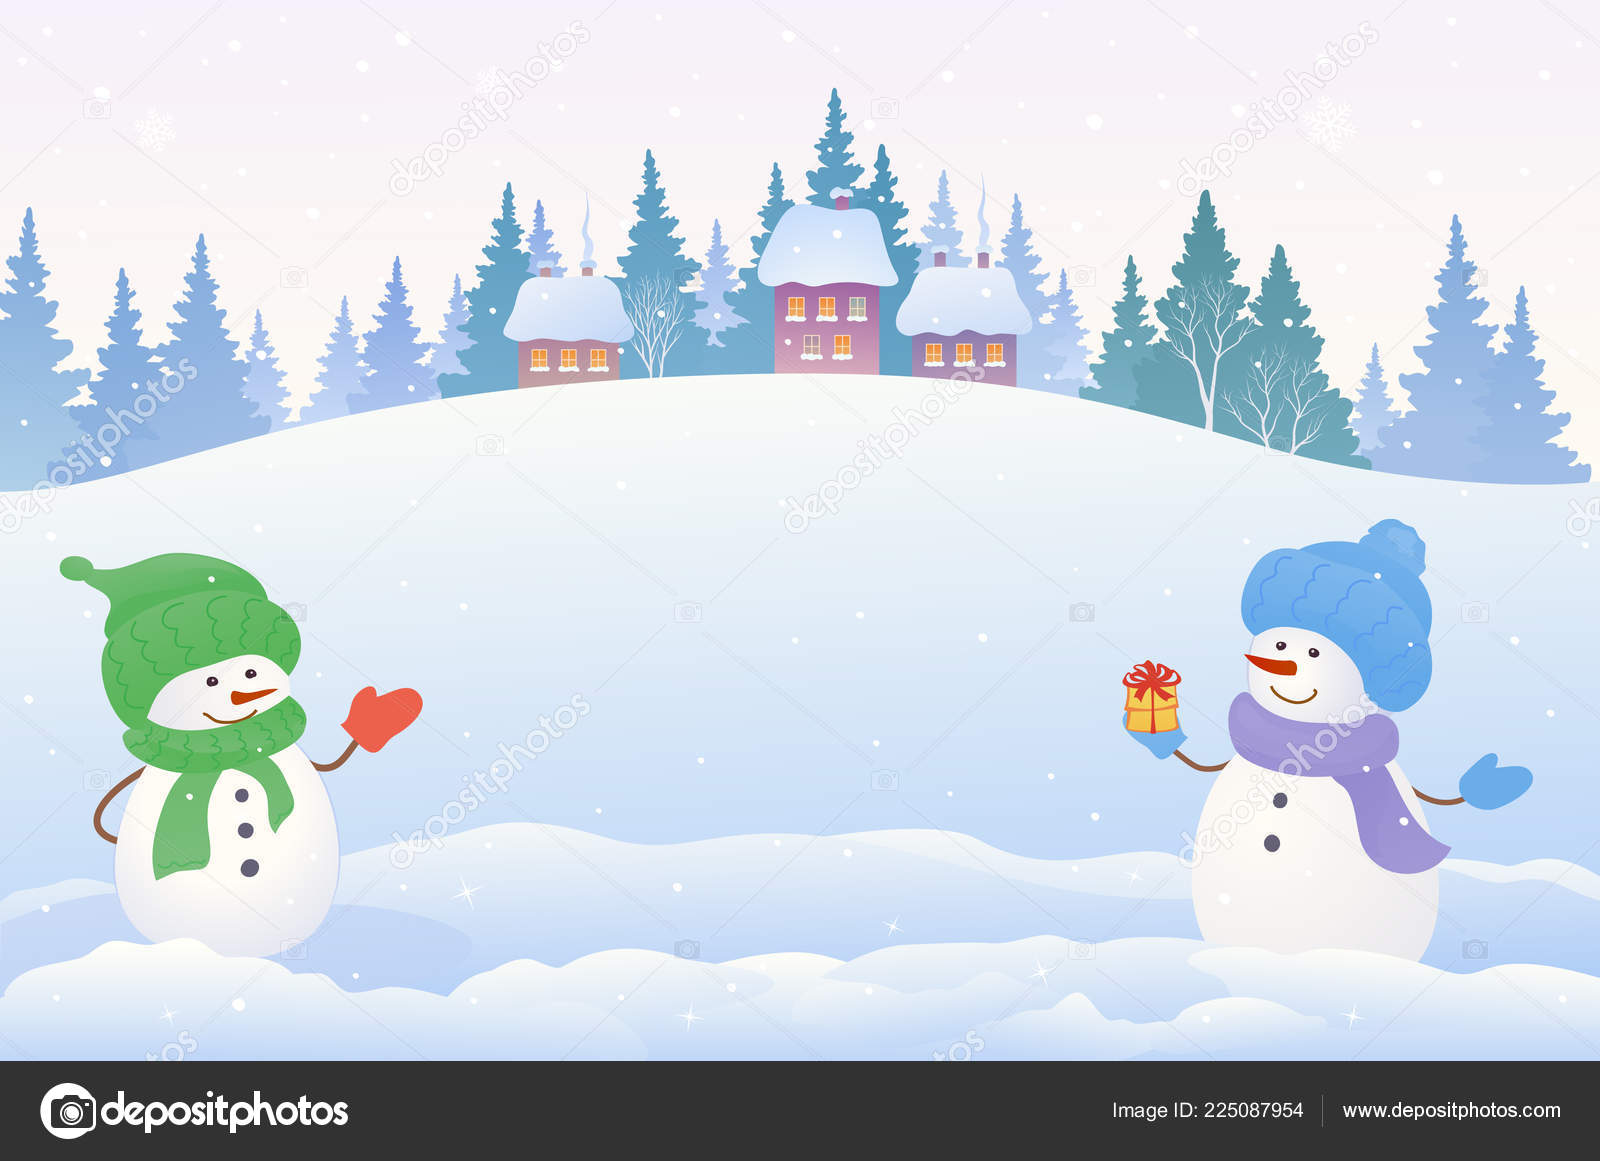 A Christmas Snow.Clipart Snow Scenery Vector Cartoon Drawing Christmas